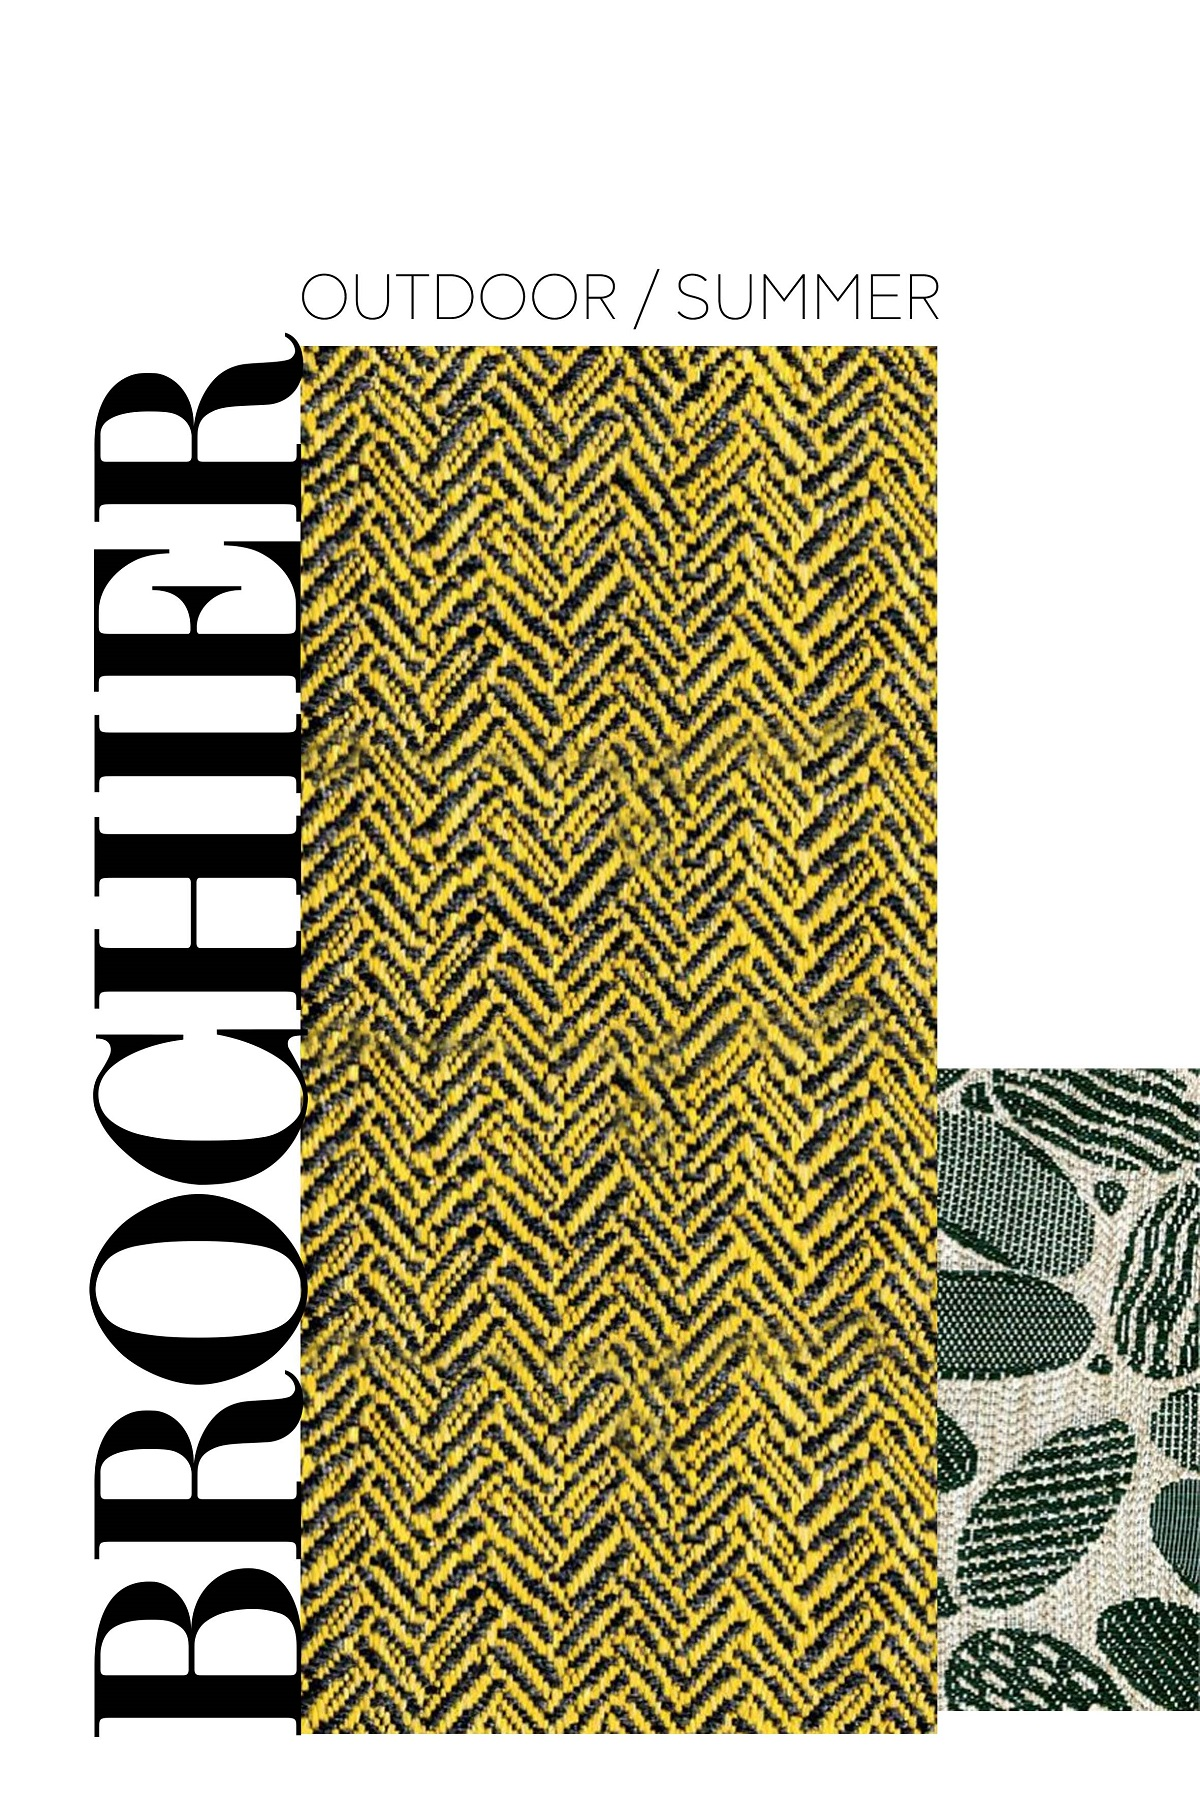 BROCHIER-Outdoor Fabrics-2018-CRIPE-b